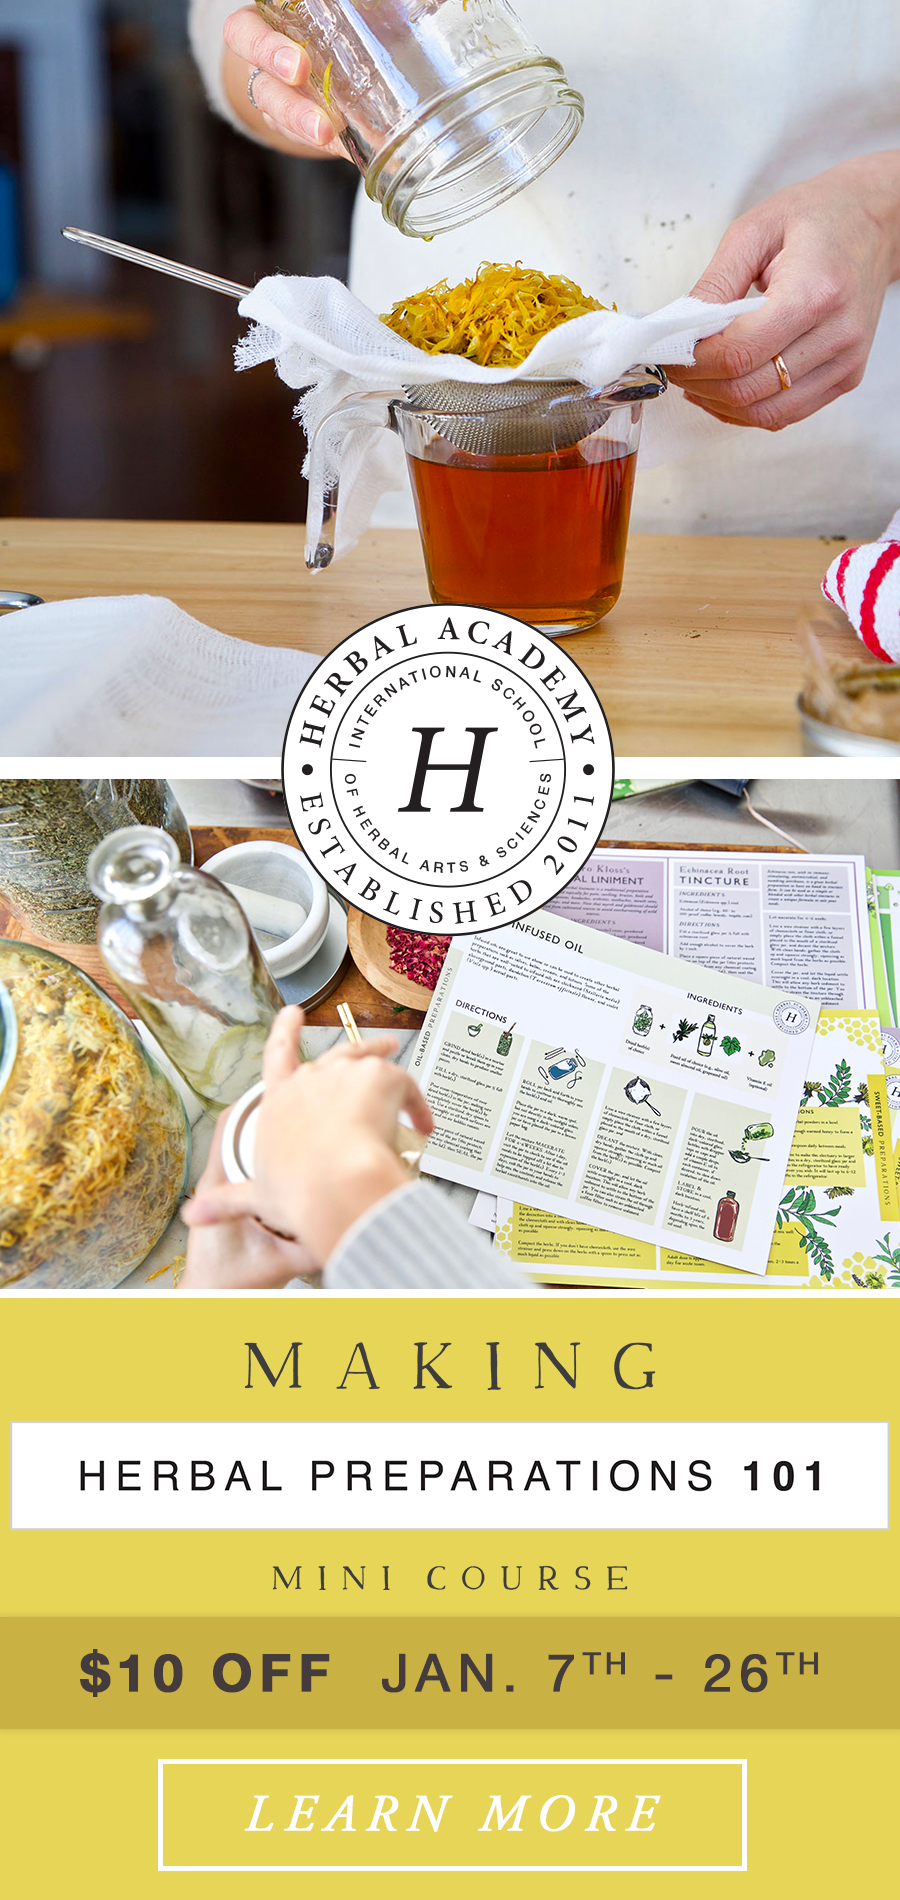 Enroll now in the Making Herbal Preparations 101 Mini Course